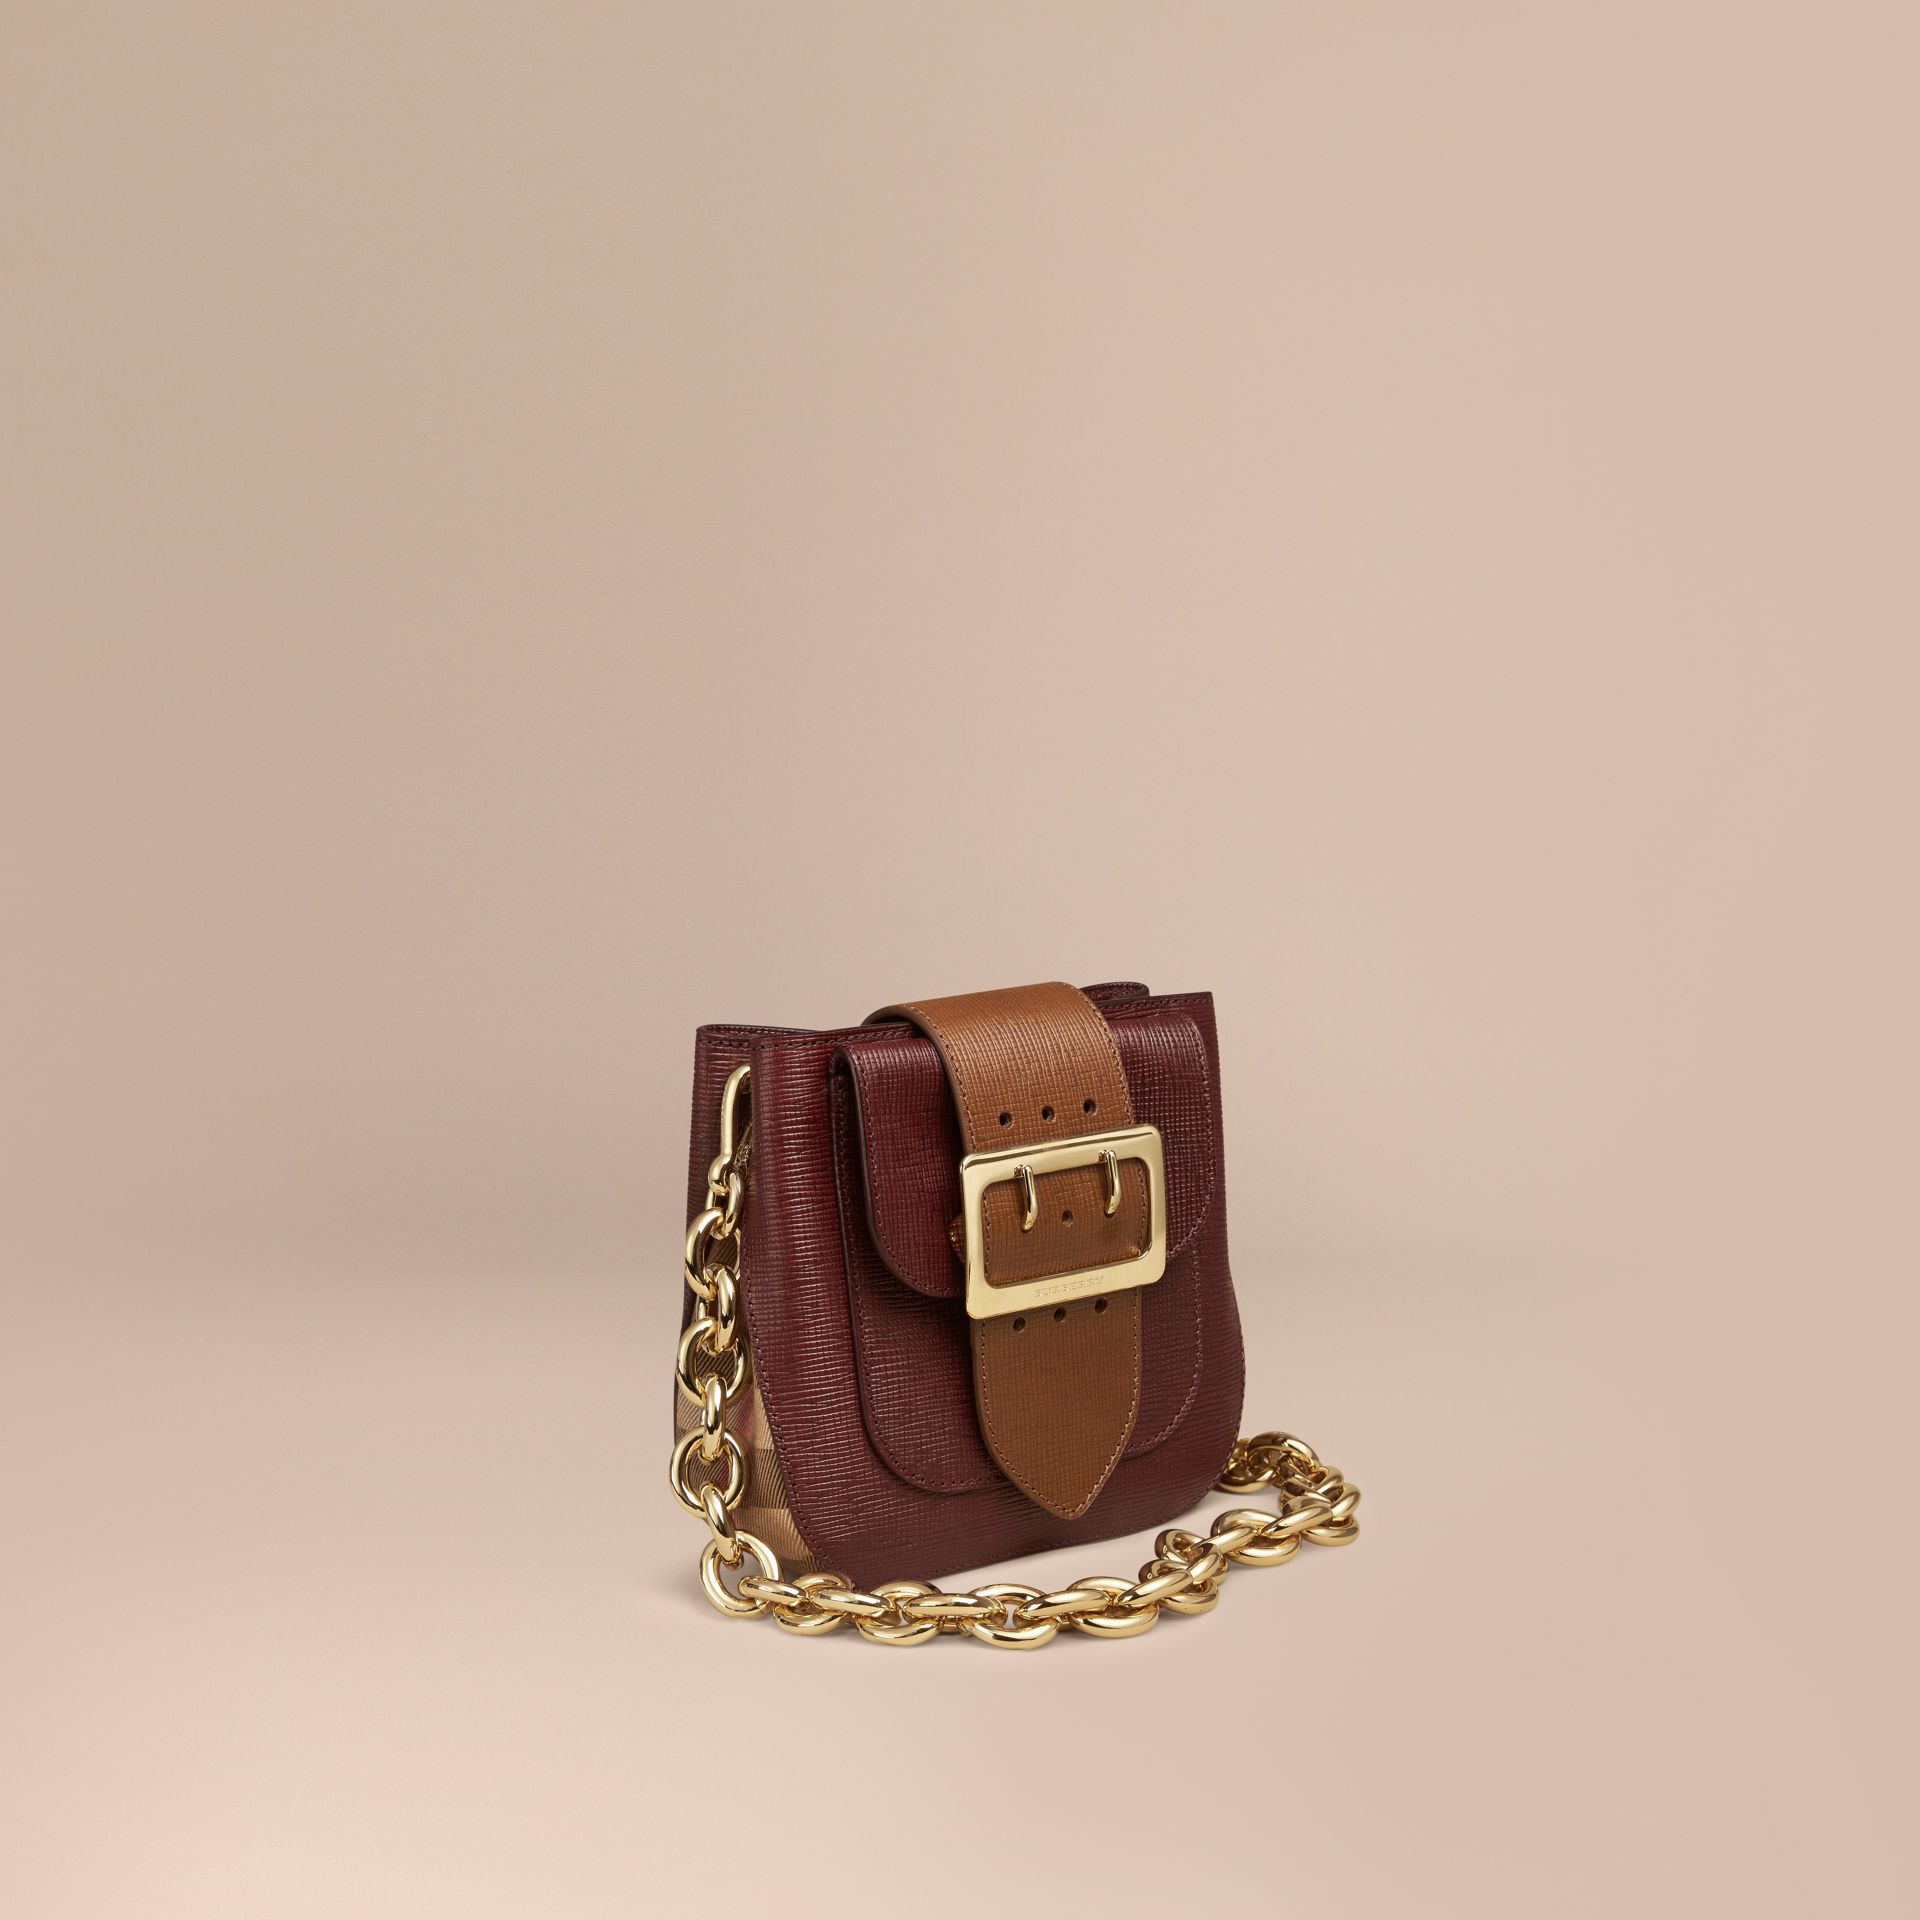 Burgundy The Small Square Buckle Bag in Leather and House Check Burgundy - gallery image 1